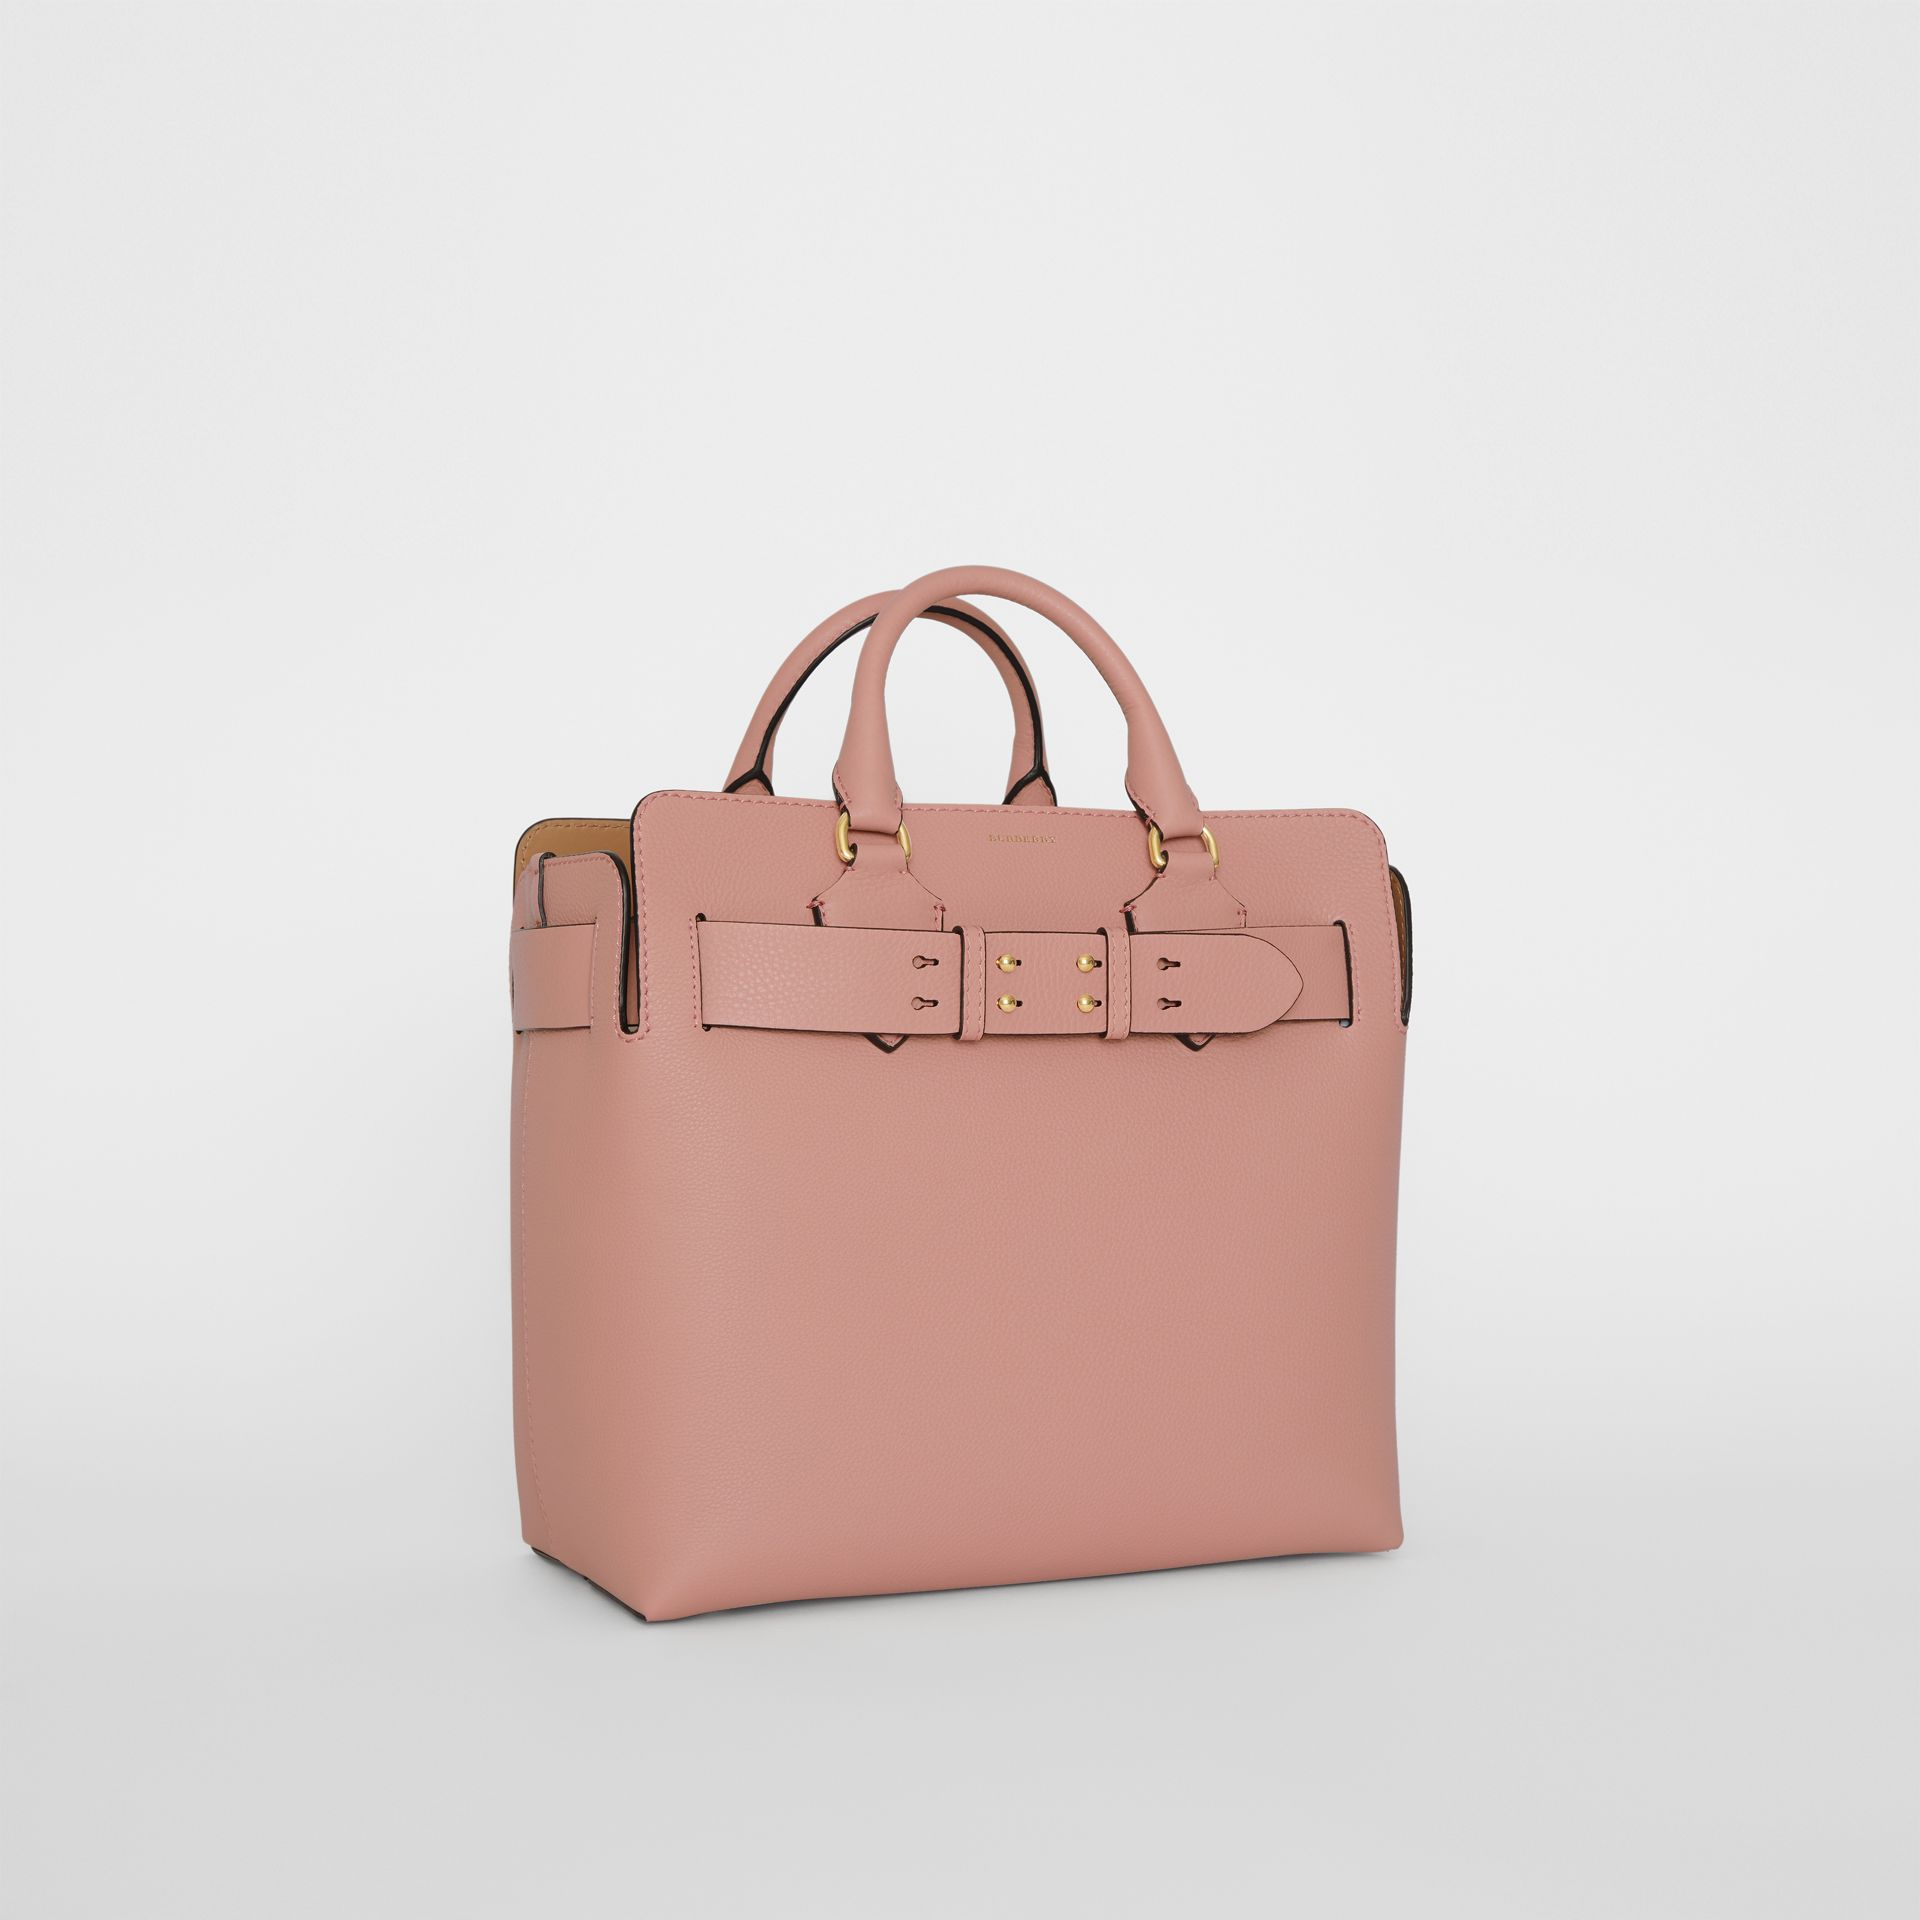 Sac The Belt moyen en cuir (Rose Platiné) - Femme | Burberry - photo de la galerie 6